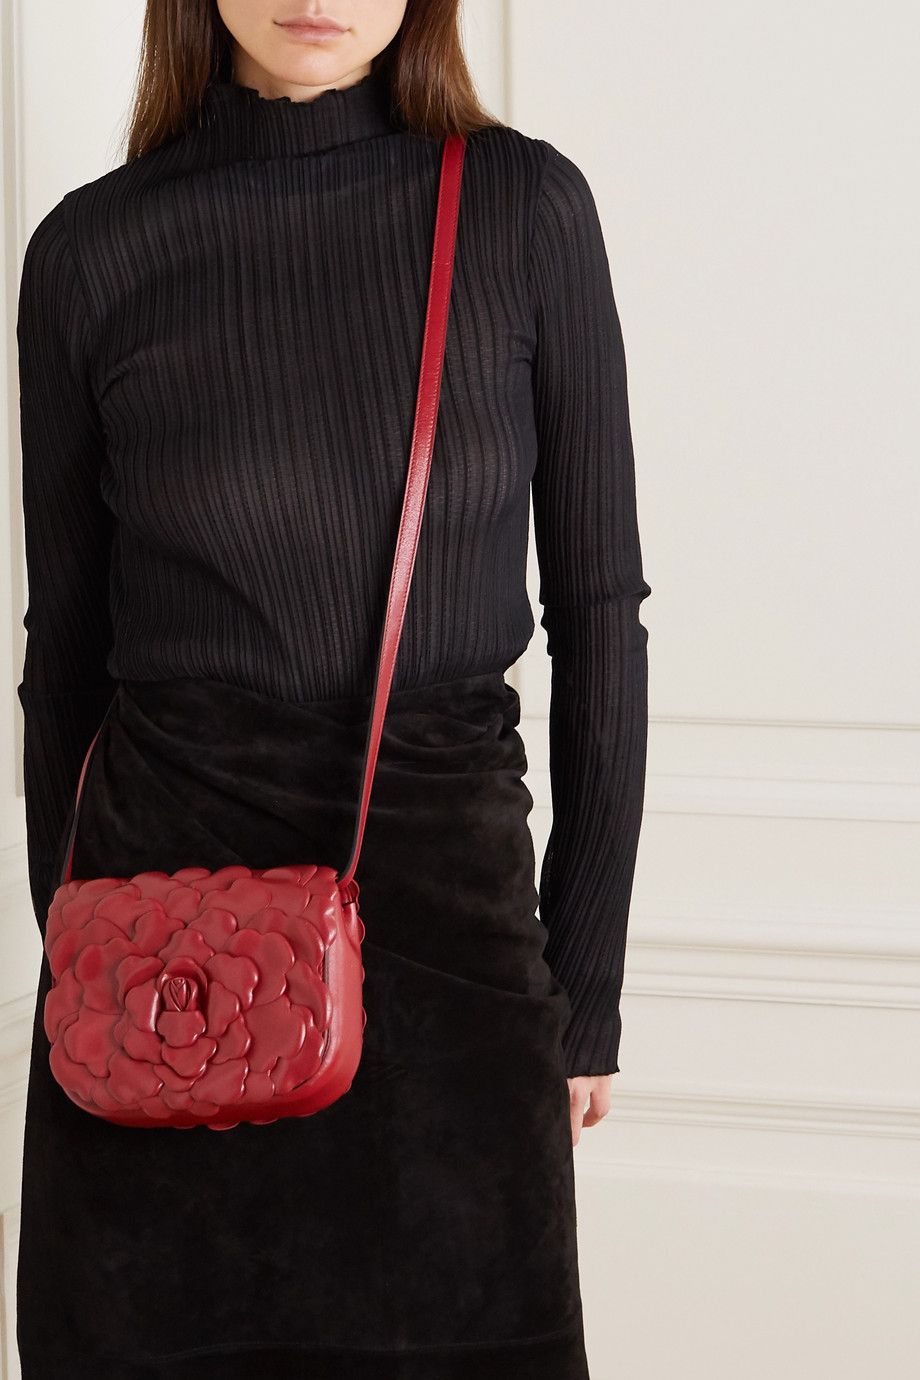 Valentino Valentino Garavani 03 Rose Edition Atelier small leather shoulder bag